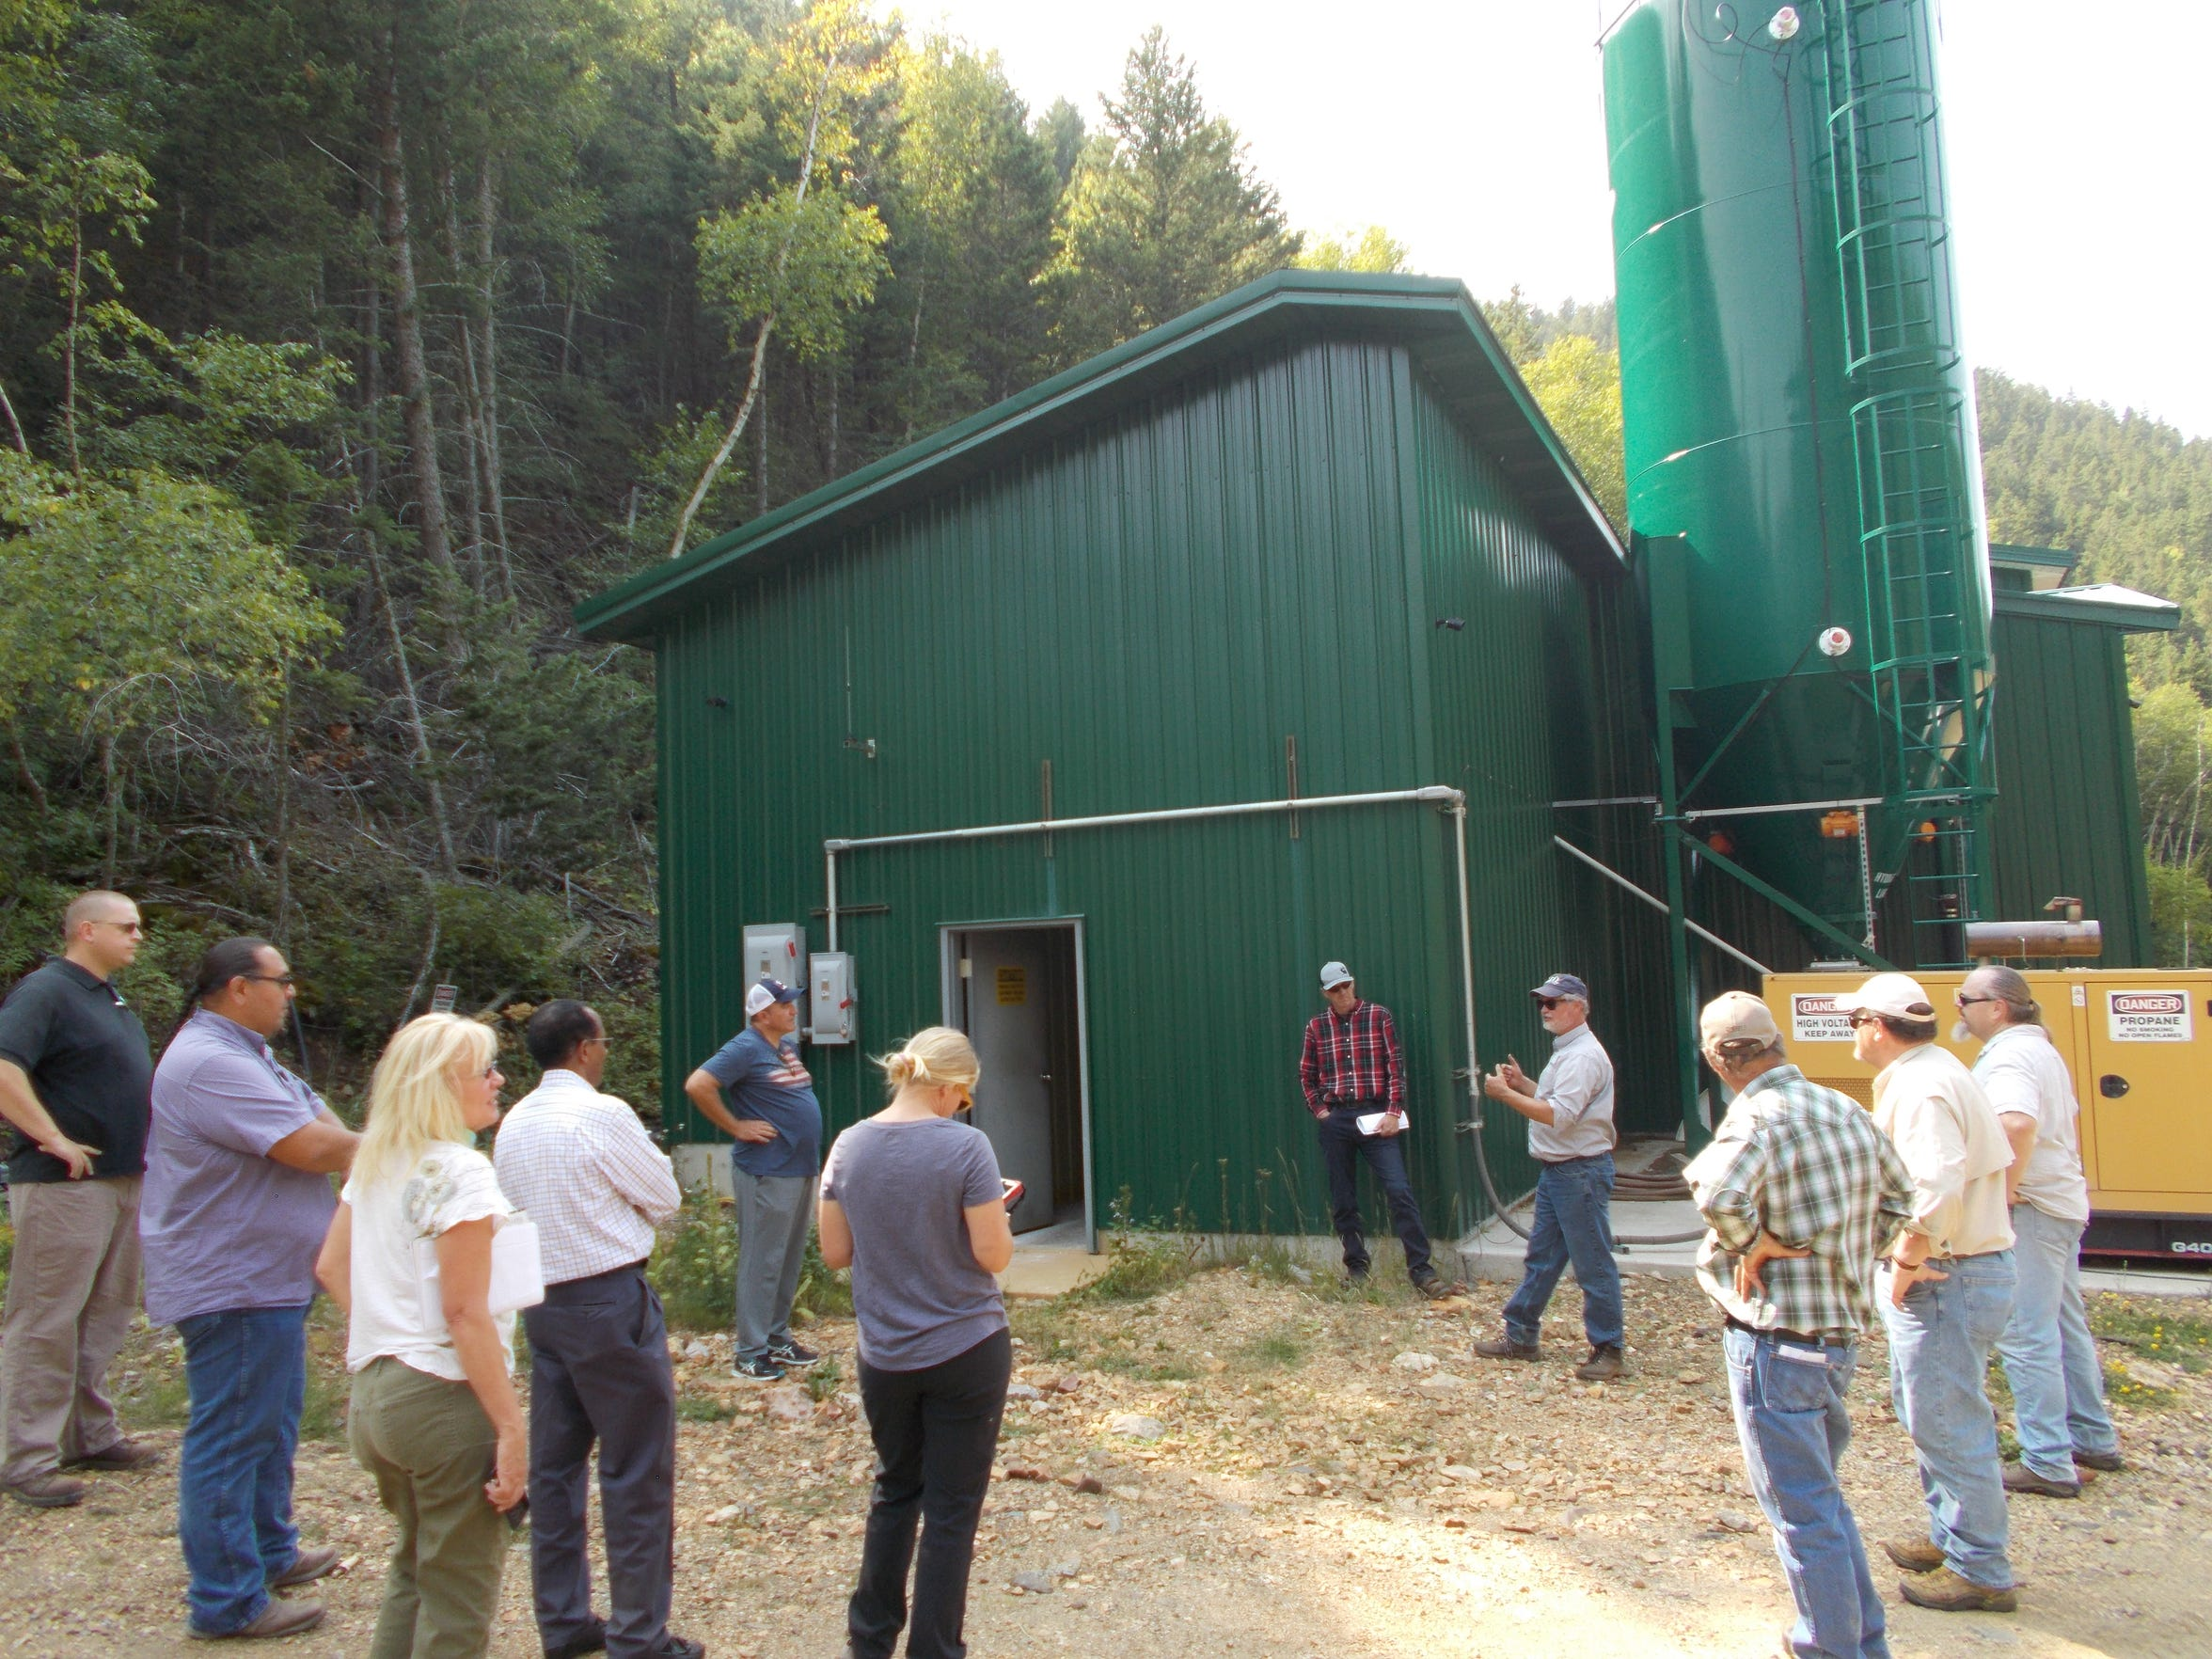 Wayne Jepson of the state Department of Environmental Quality explains how the Swift Gulch Water Treatment Plant works during a tour.